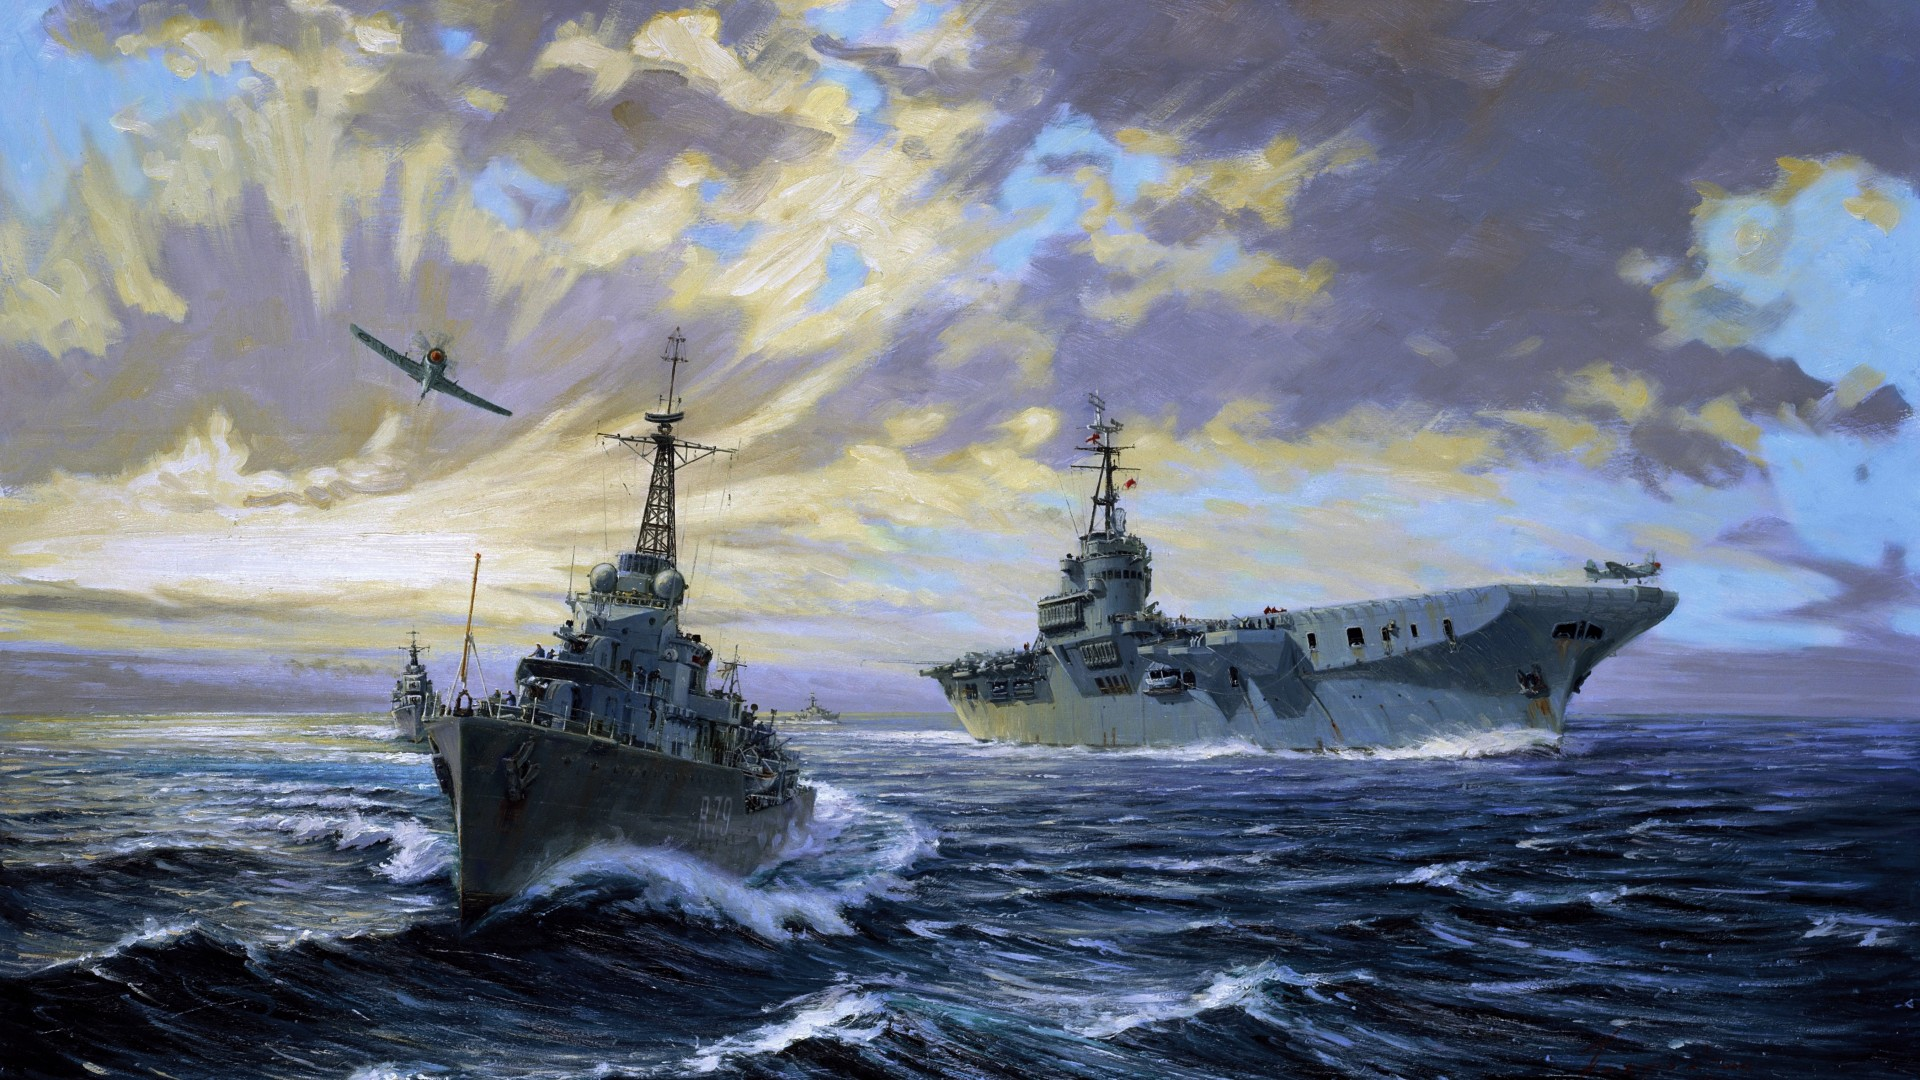 art painting military navy weapons vehicles ships boats ocean sea